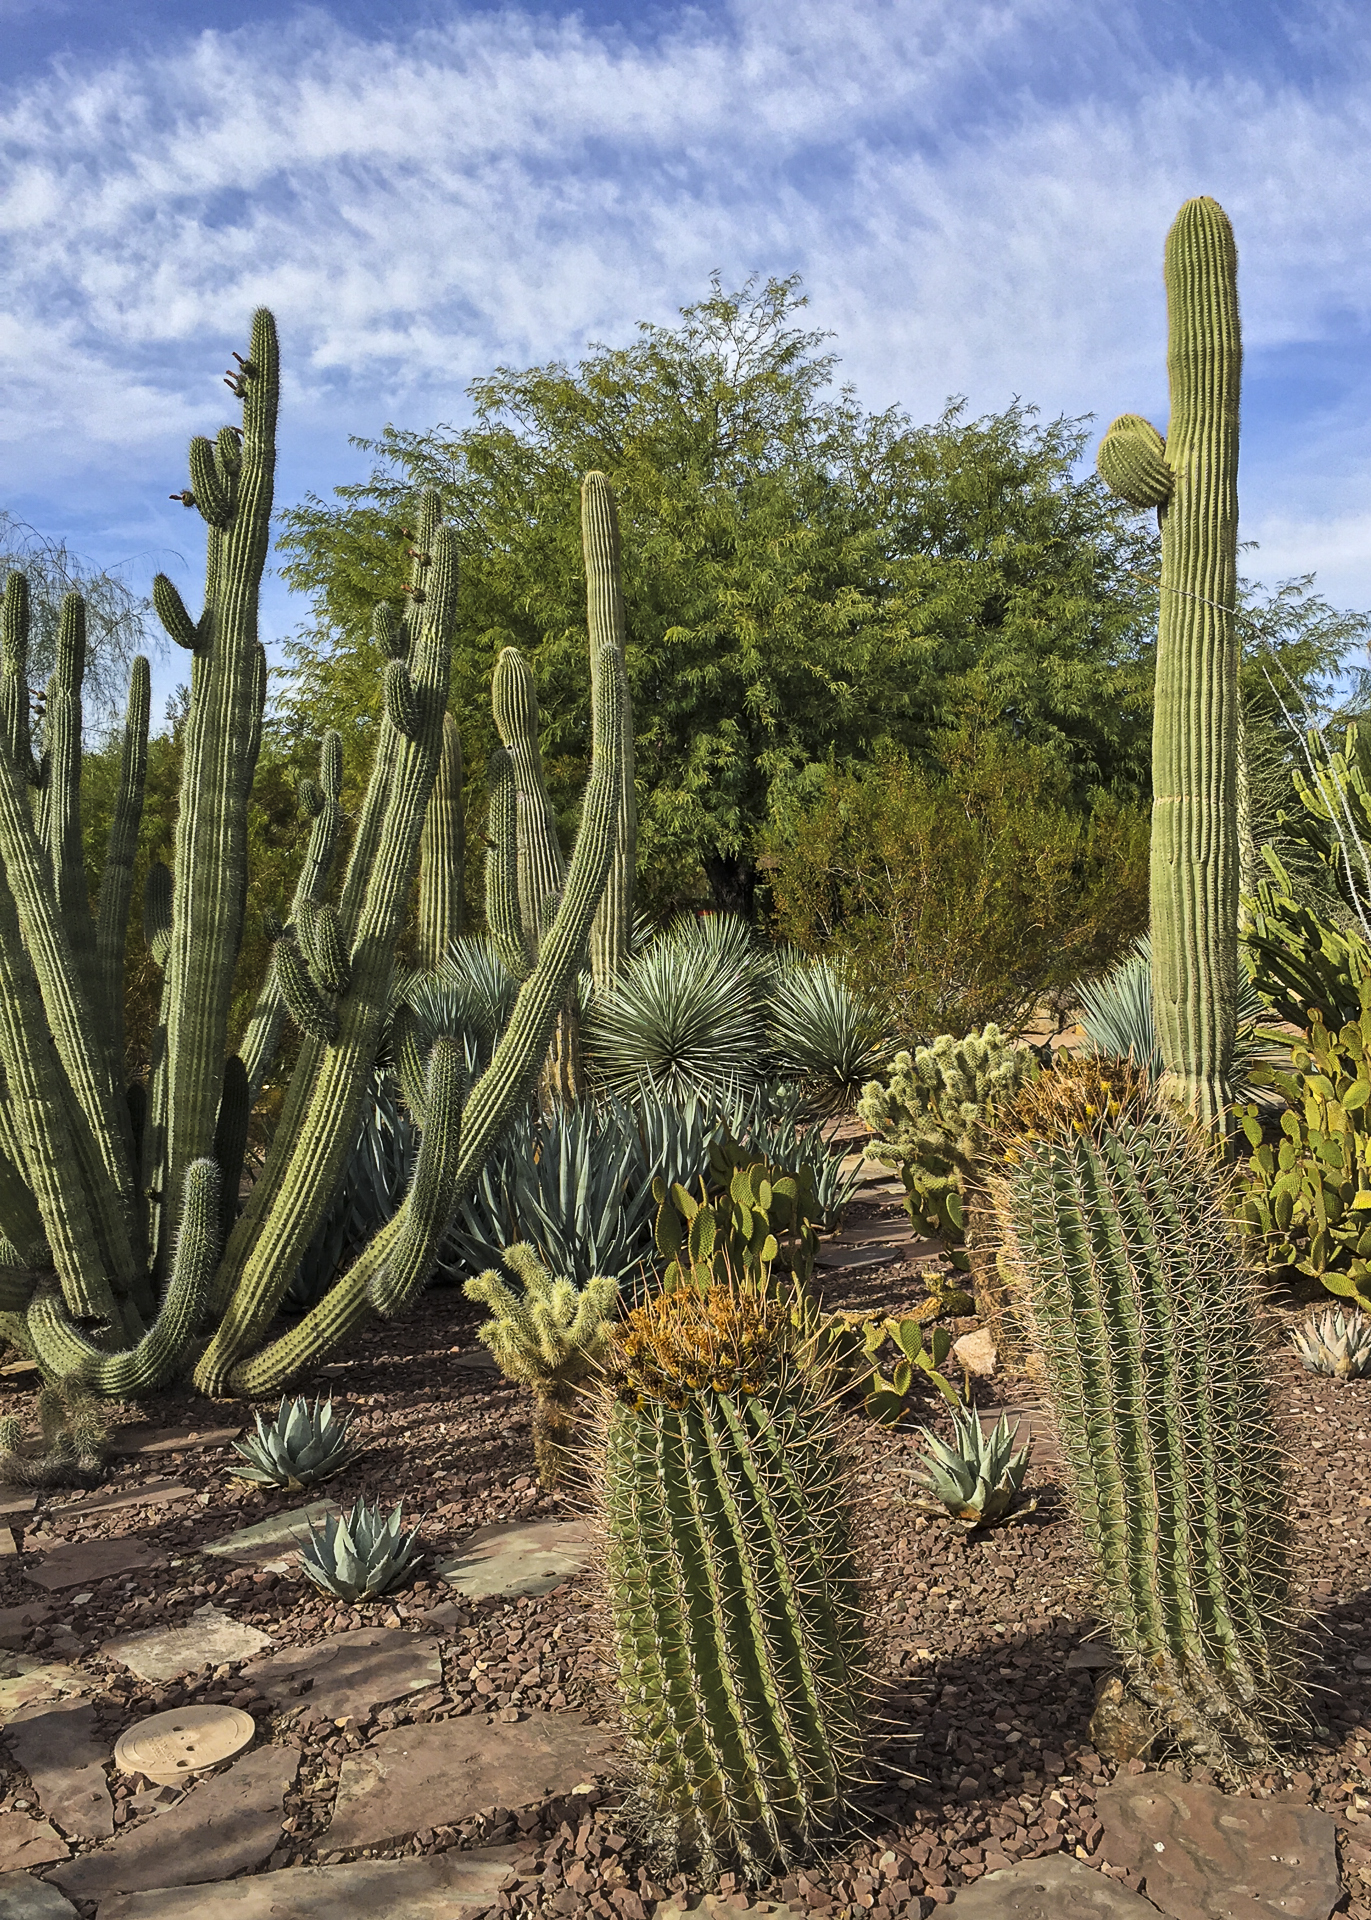 A whole series of different cacti - so cool!